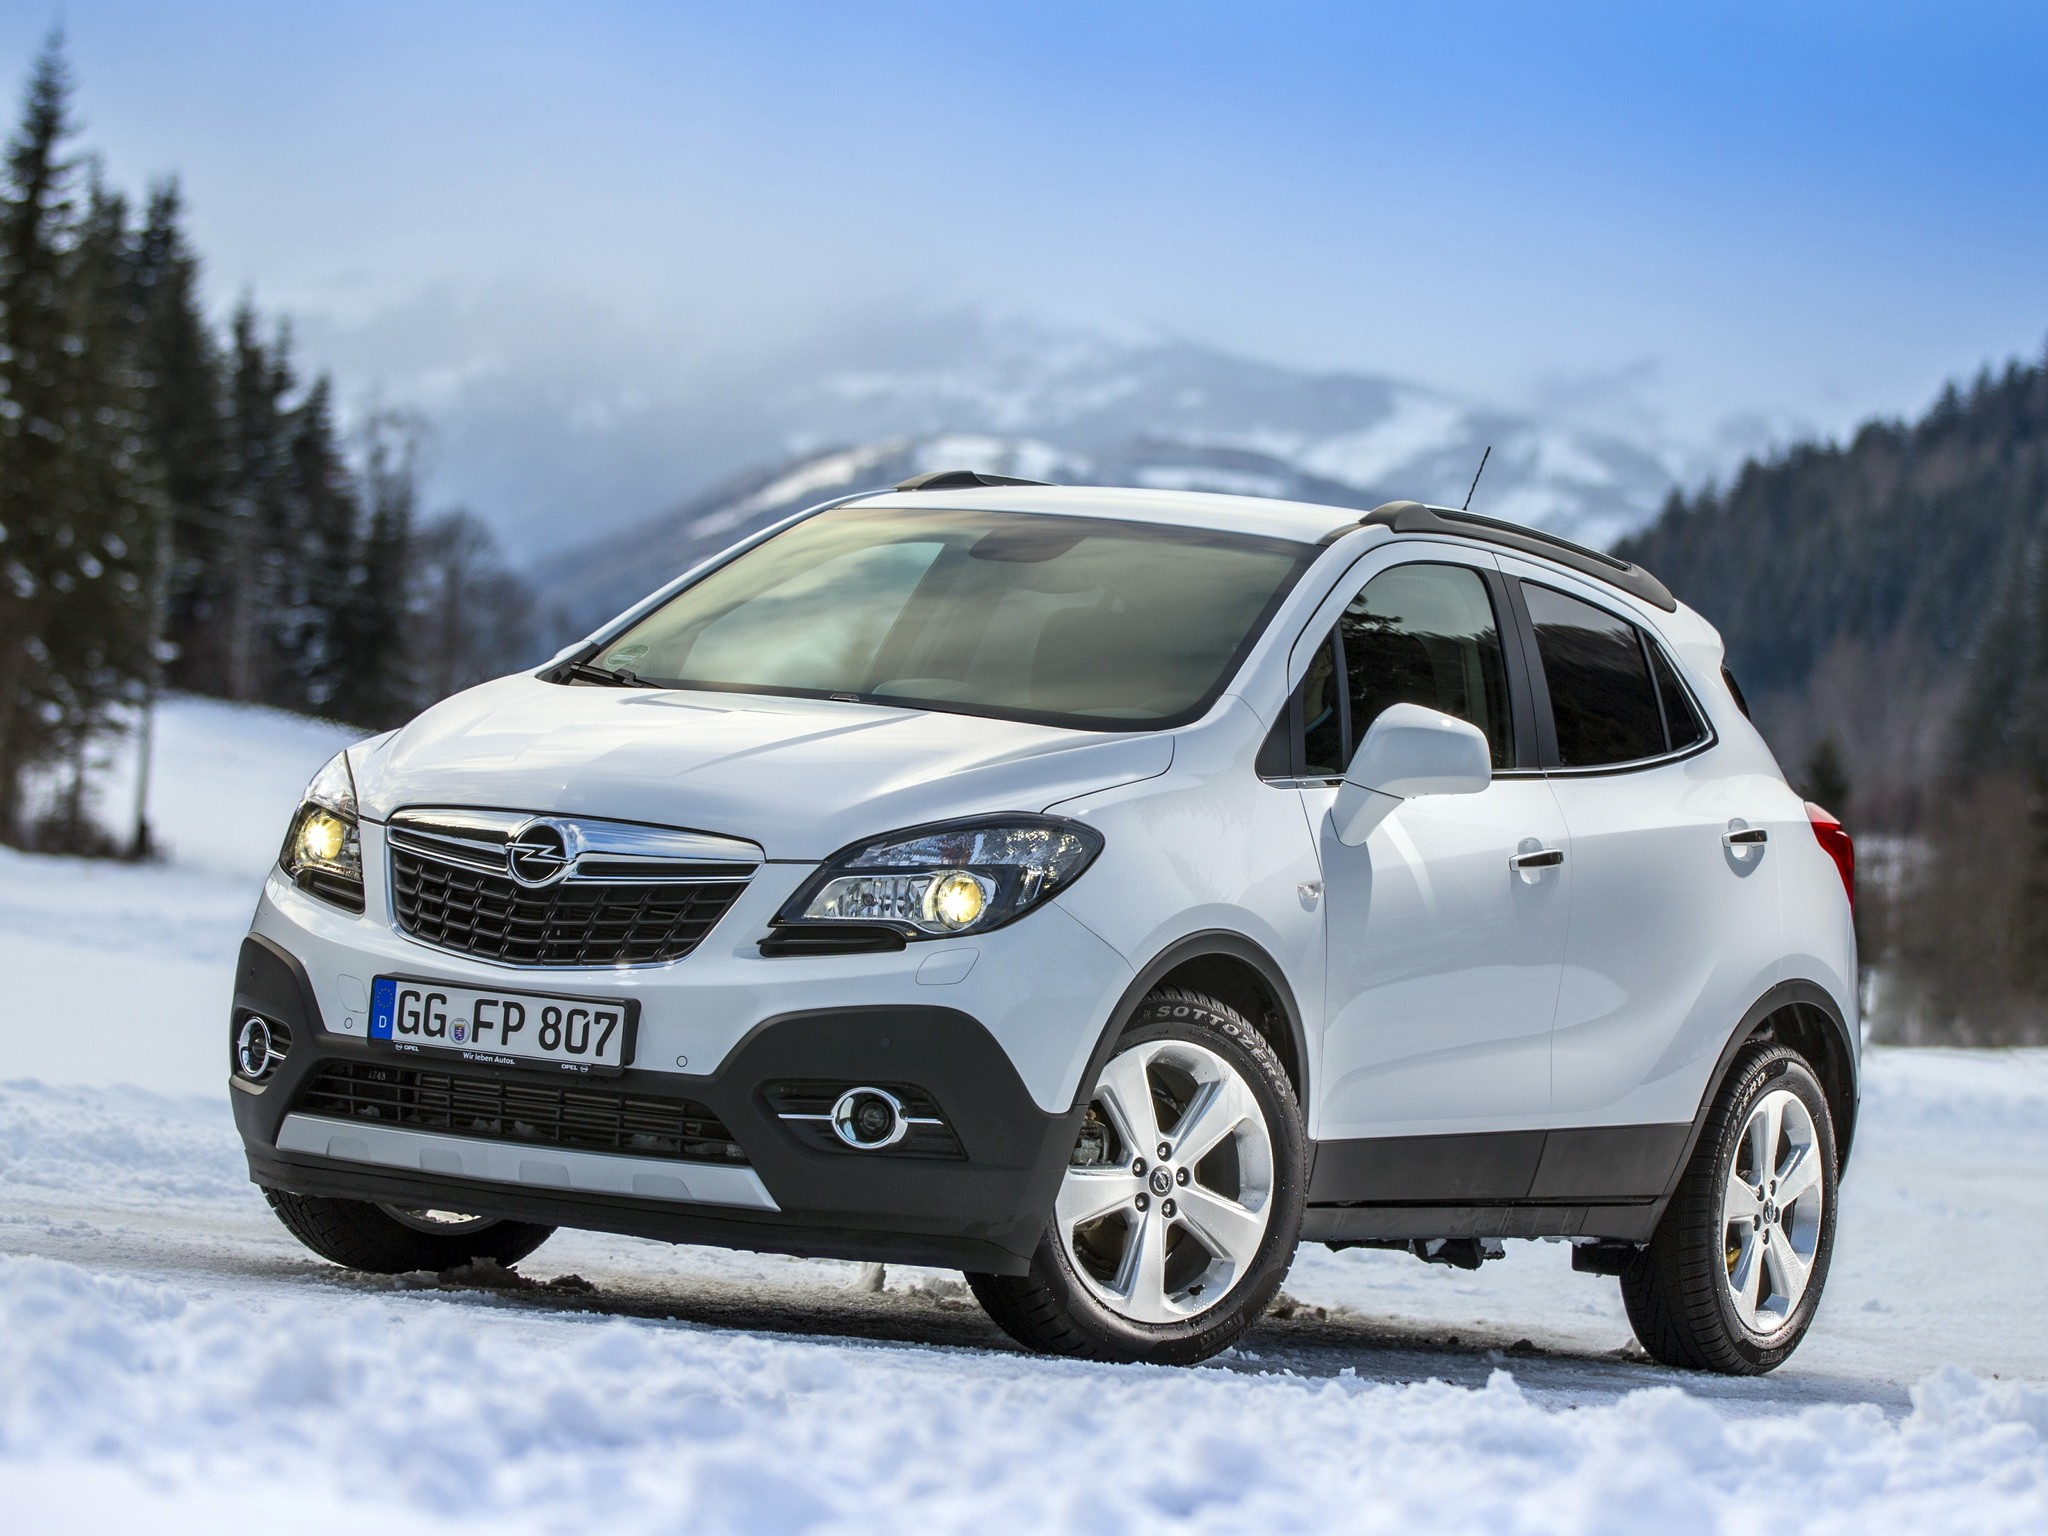 opel mokka specs 2012 2013 2014 2015 2016 autoevolution. Black Bedroom Furniture Sets. Home Design Ideas